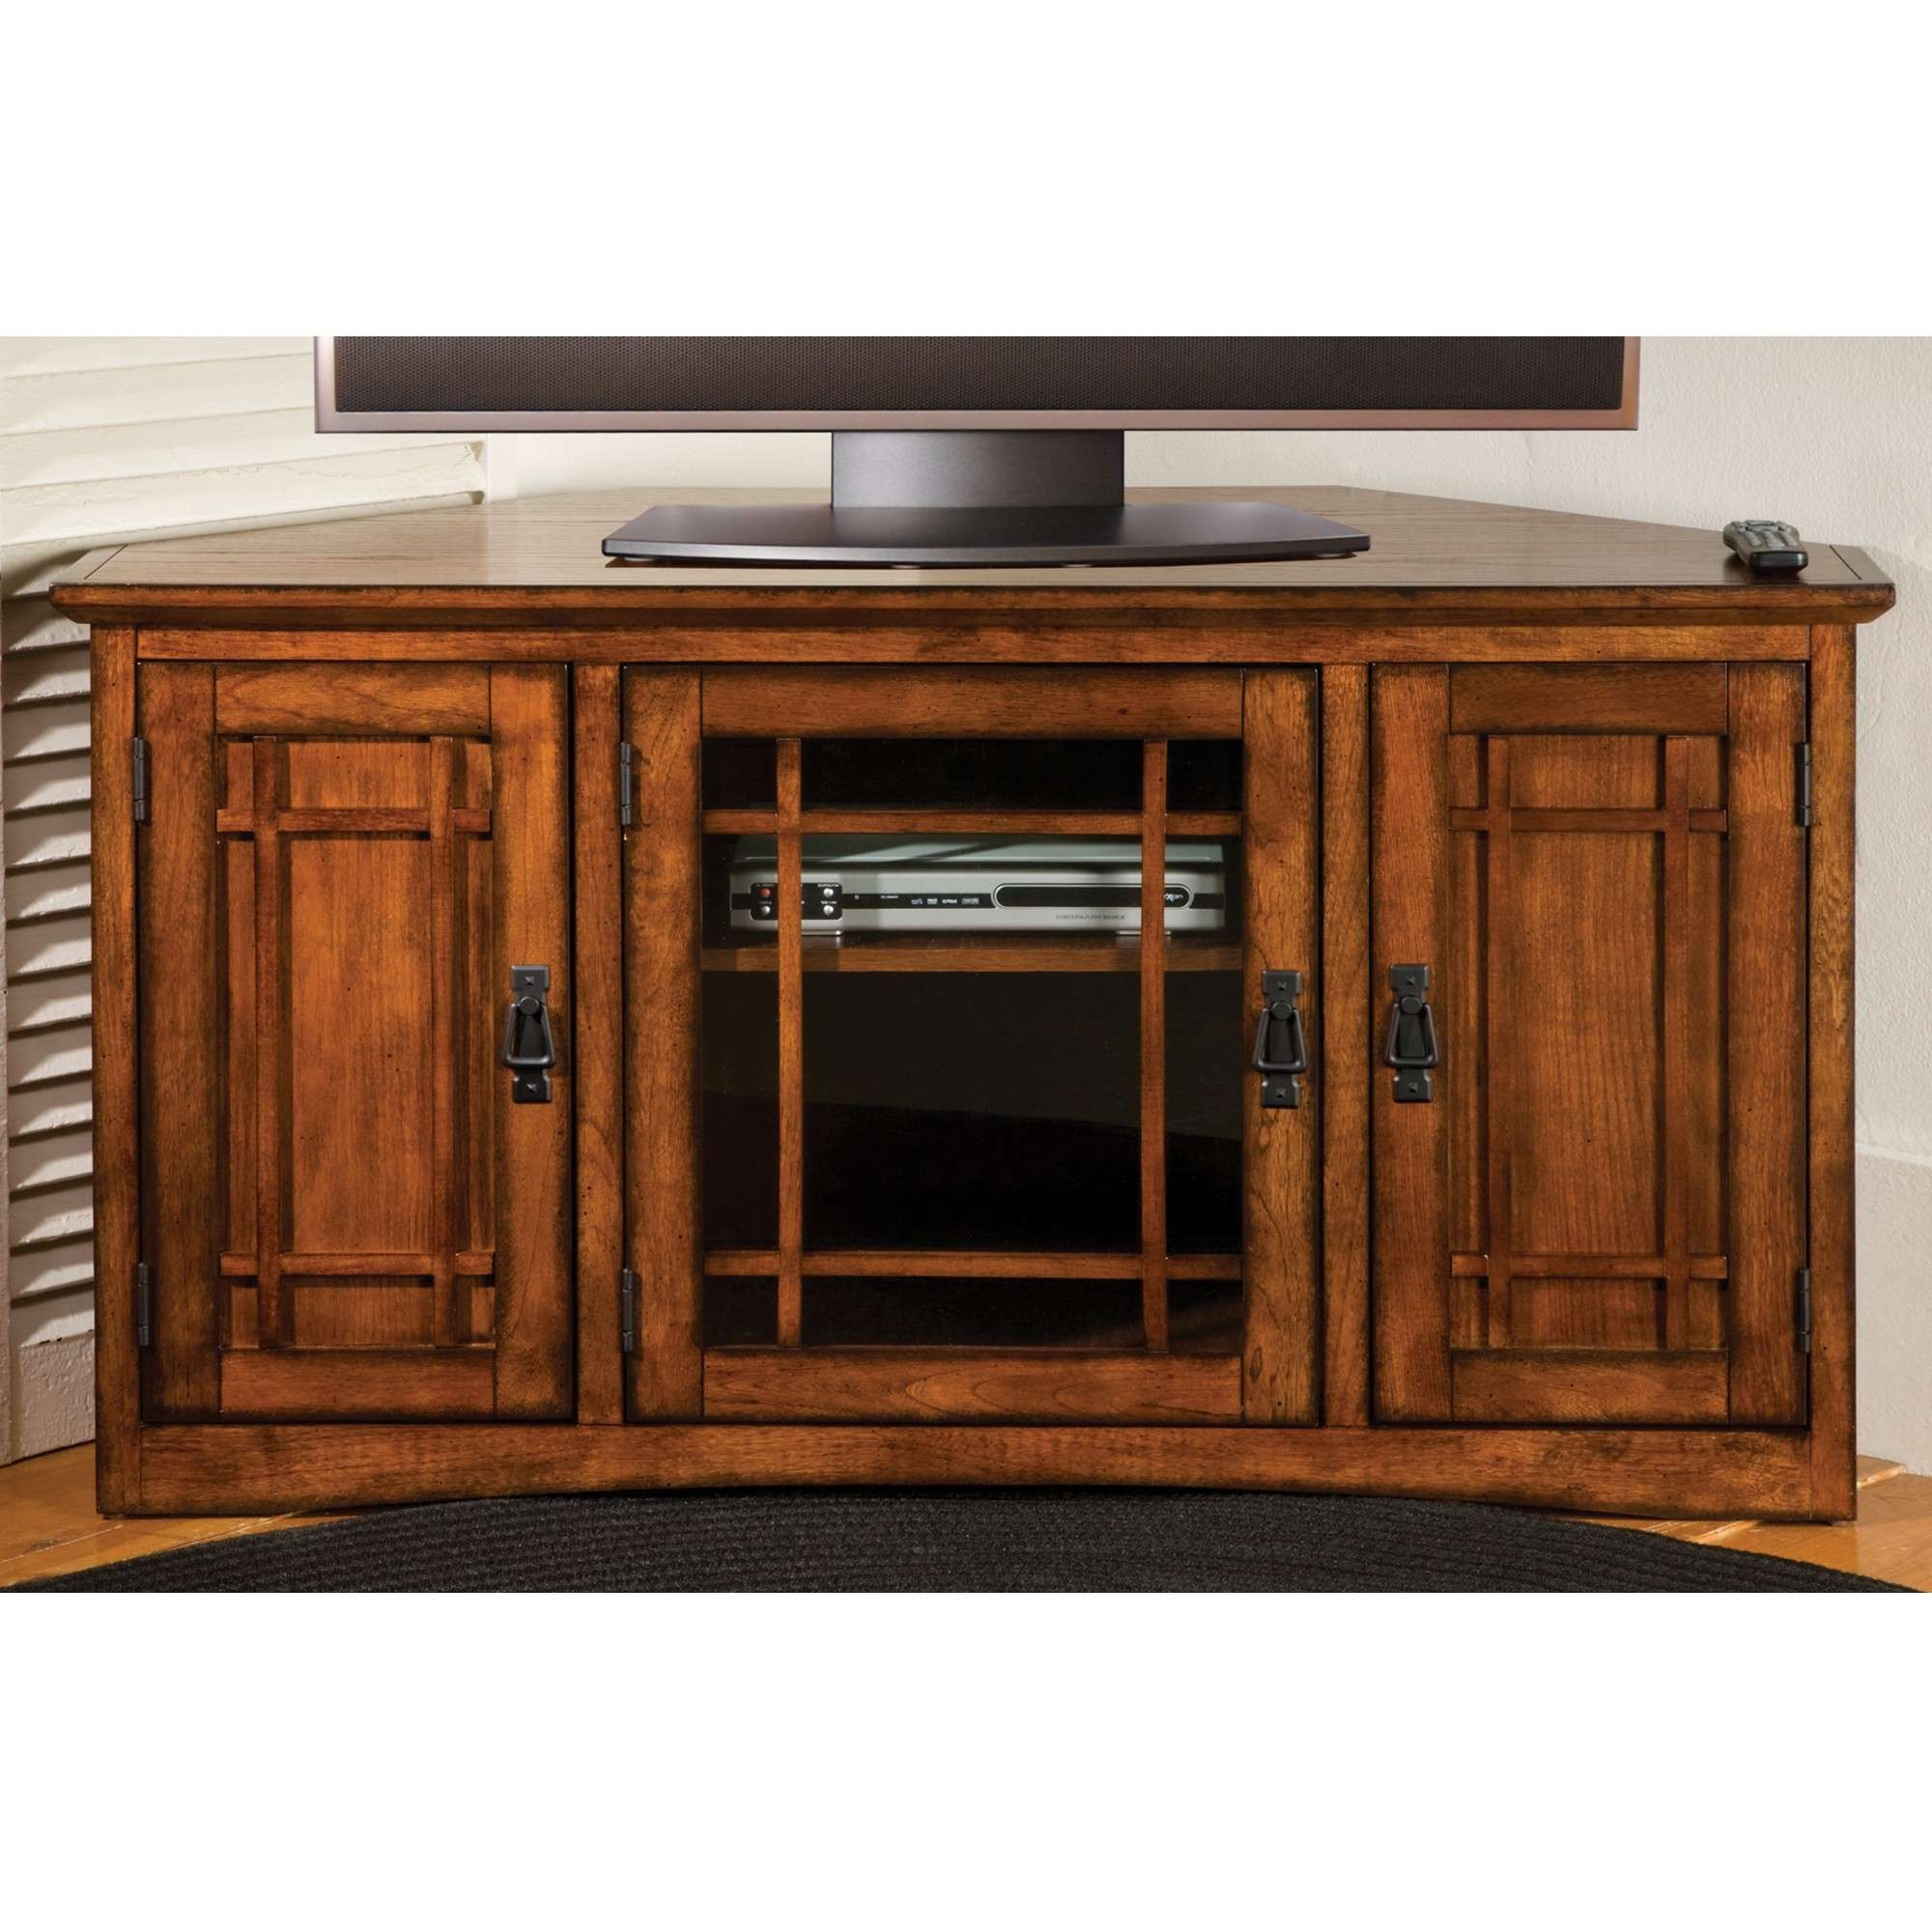 Mission Corner Tv Cabinet | Sturbridge Yankee Workshop In Black Corner Tv Cabinets With Glass Doors (View 5 of 20)